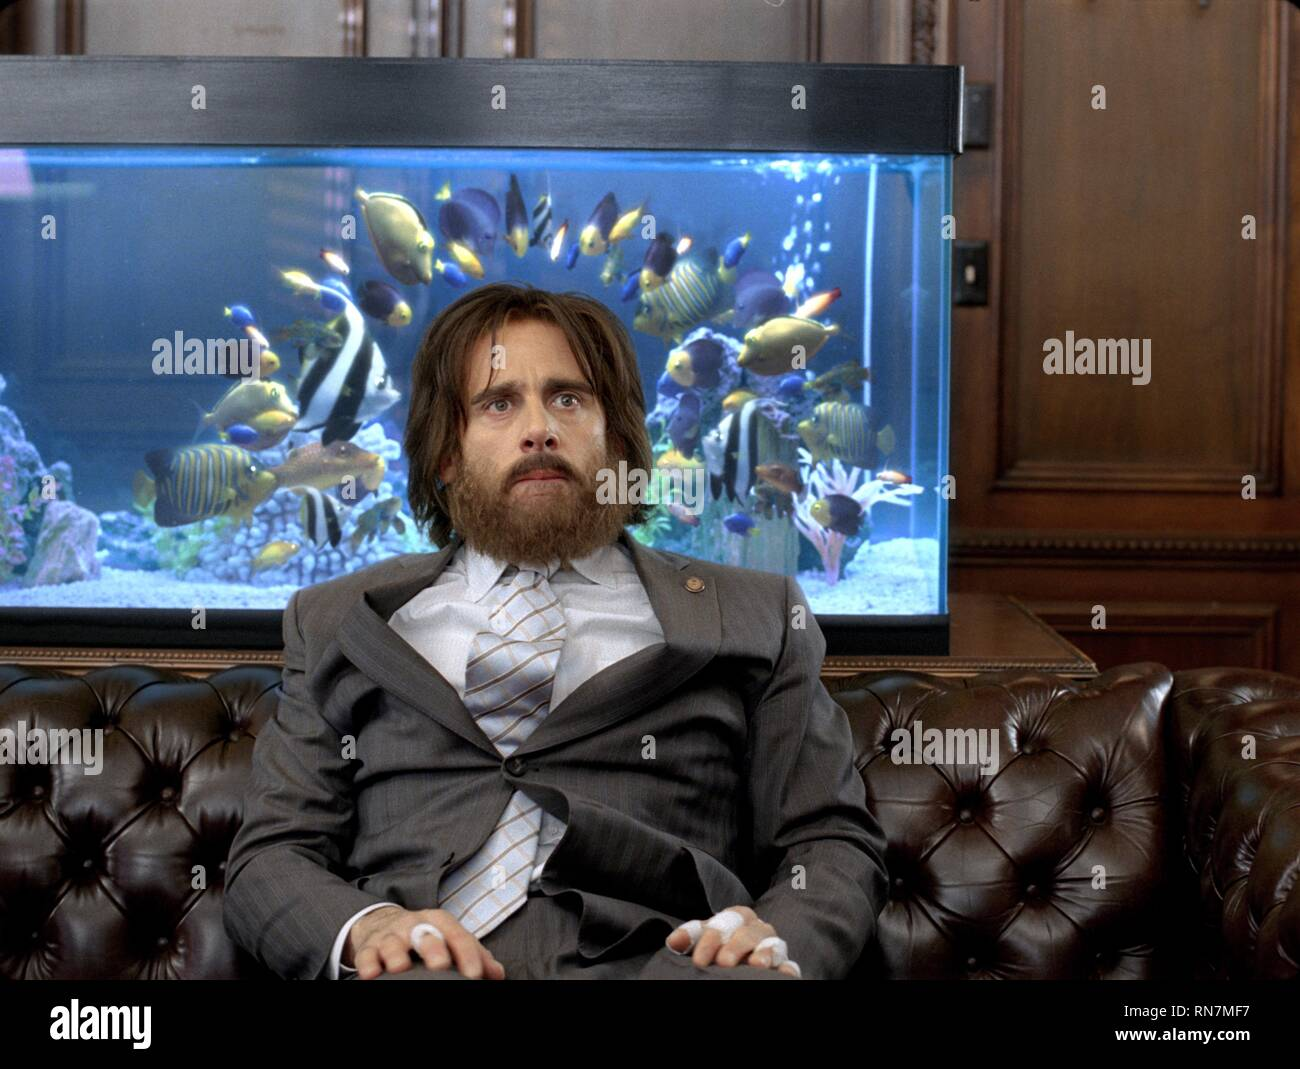 STEVE CARELL, EVAN ALMIGHTY, 2007 - Stock Image